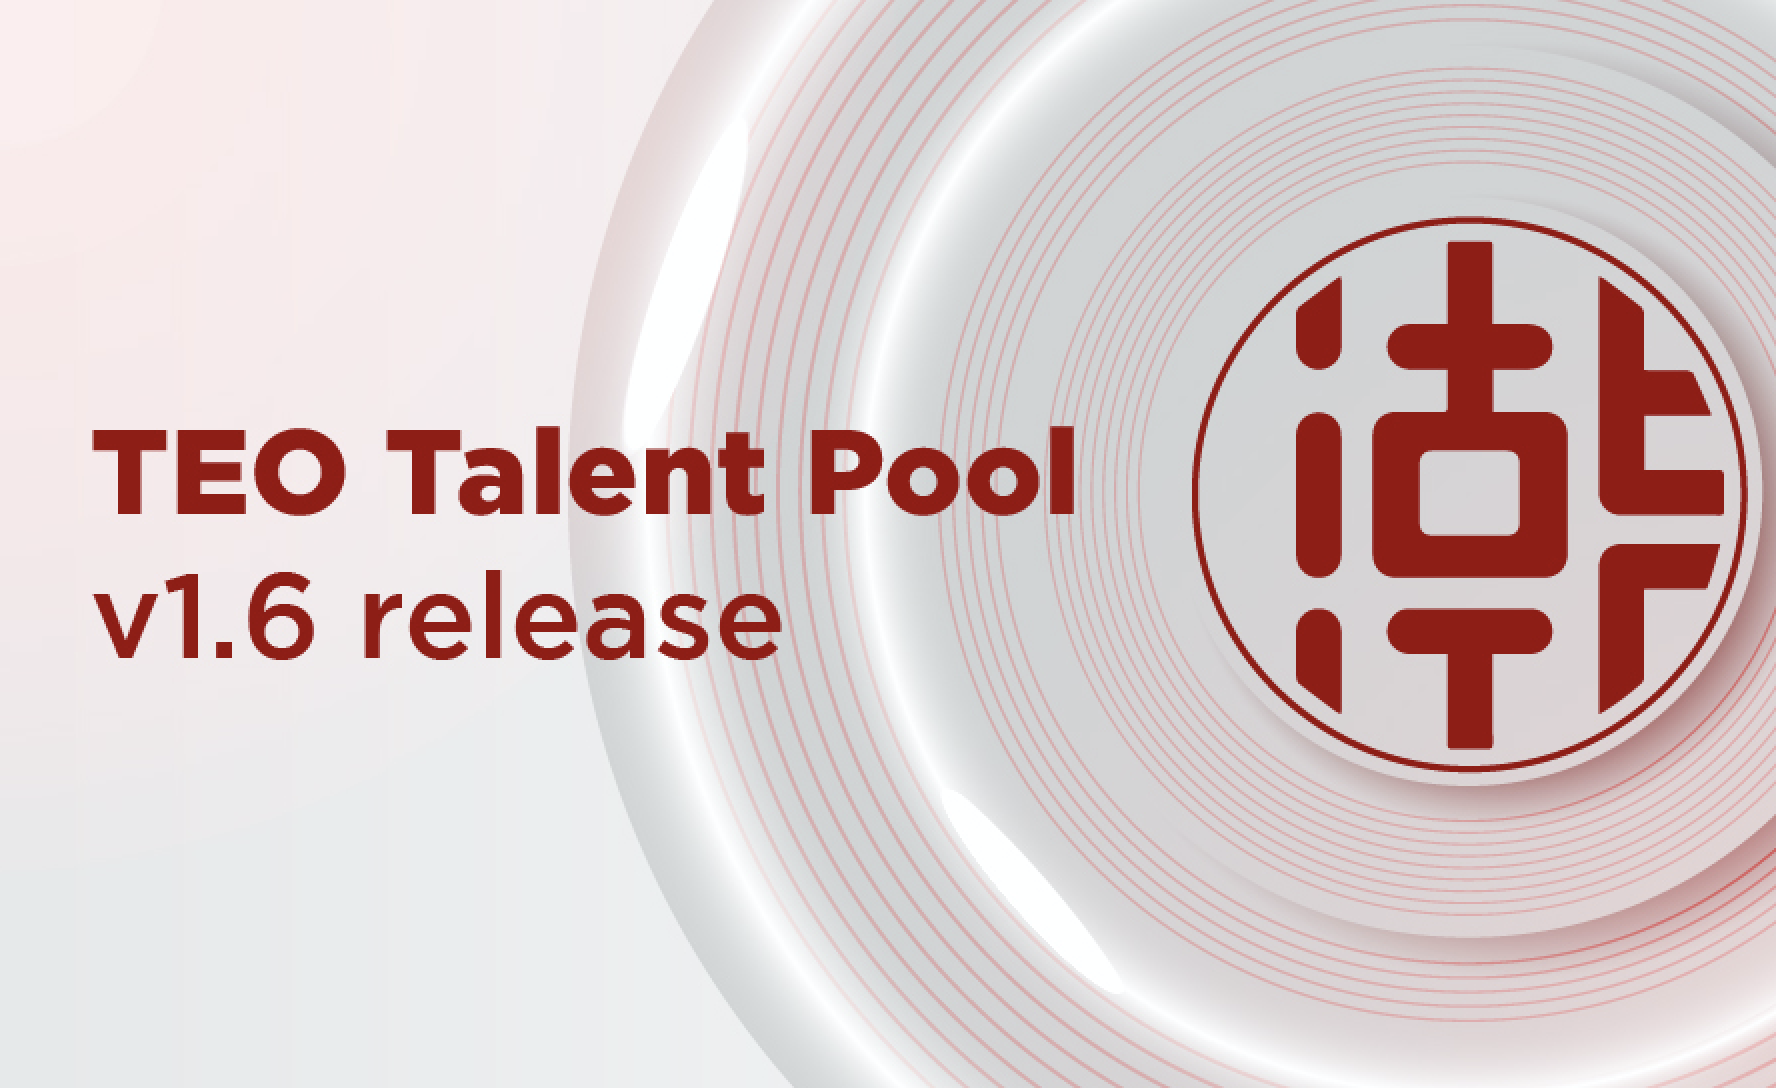 TEO Talent Pool v1.6 releases!